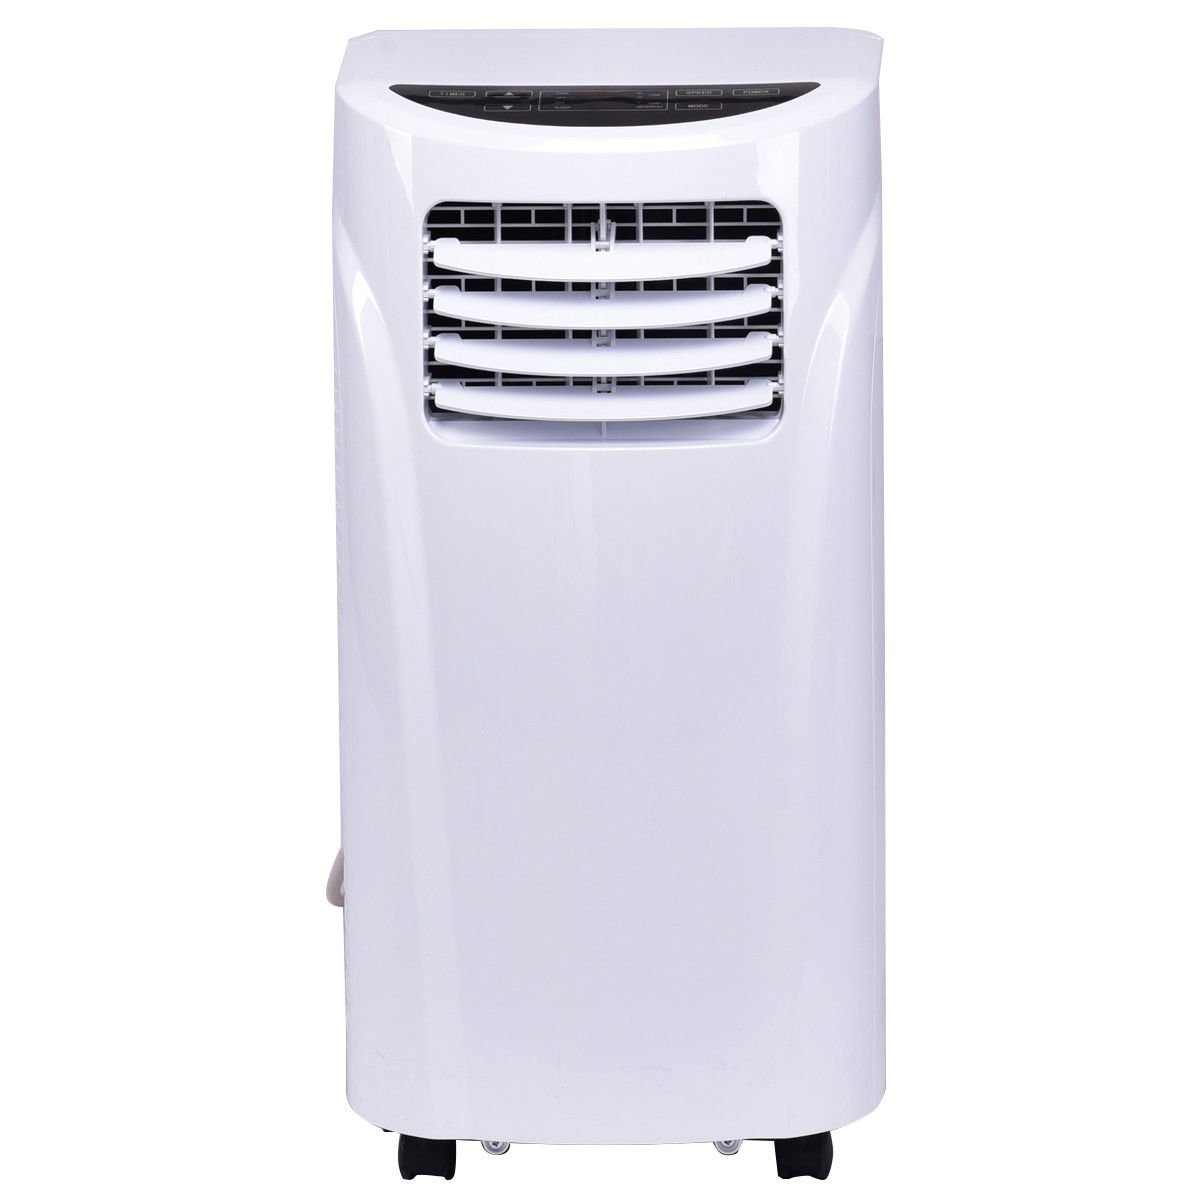 Costway 10,000 BTU Portable Air Conditioner with Remote Control Dehumidifier Function Window Wall Mount in White by COSTWAY (Image #3)